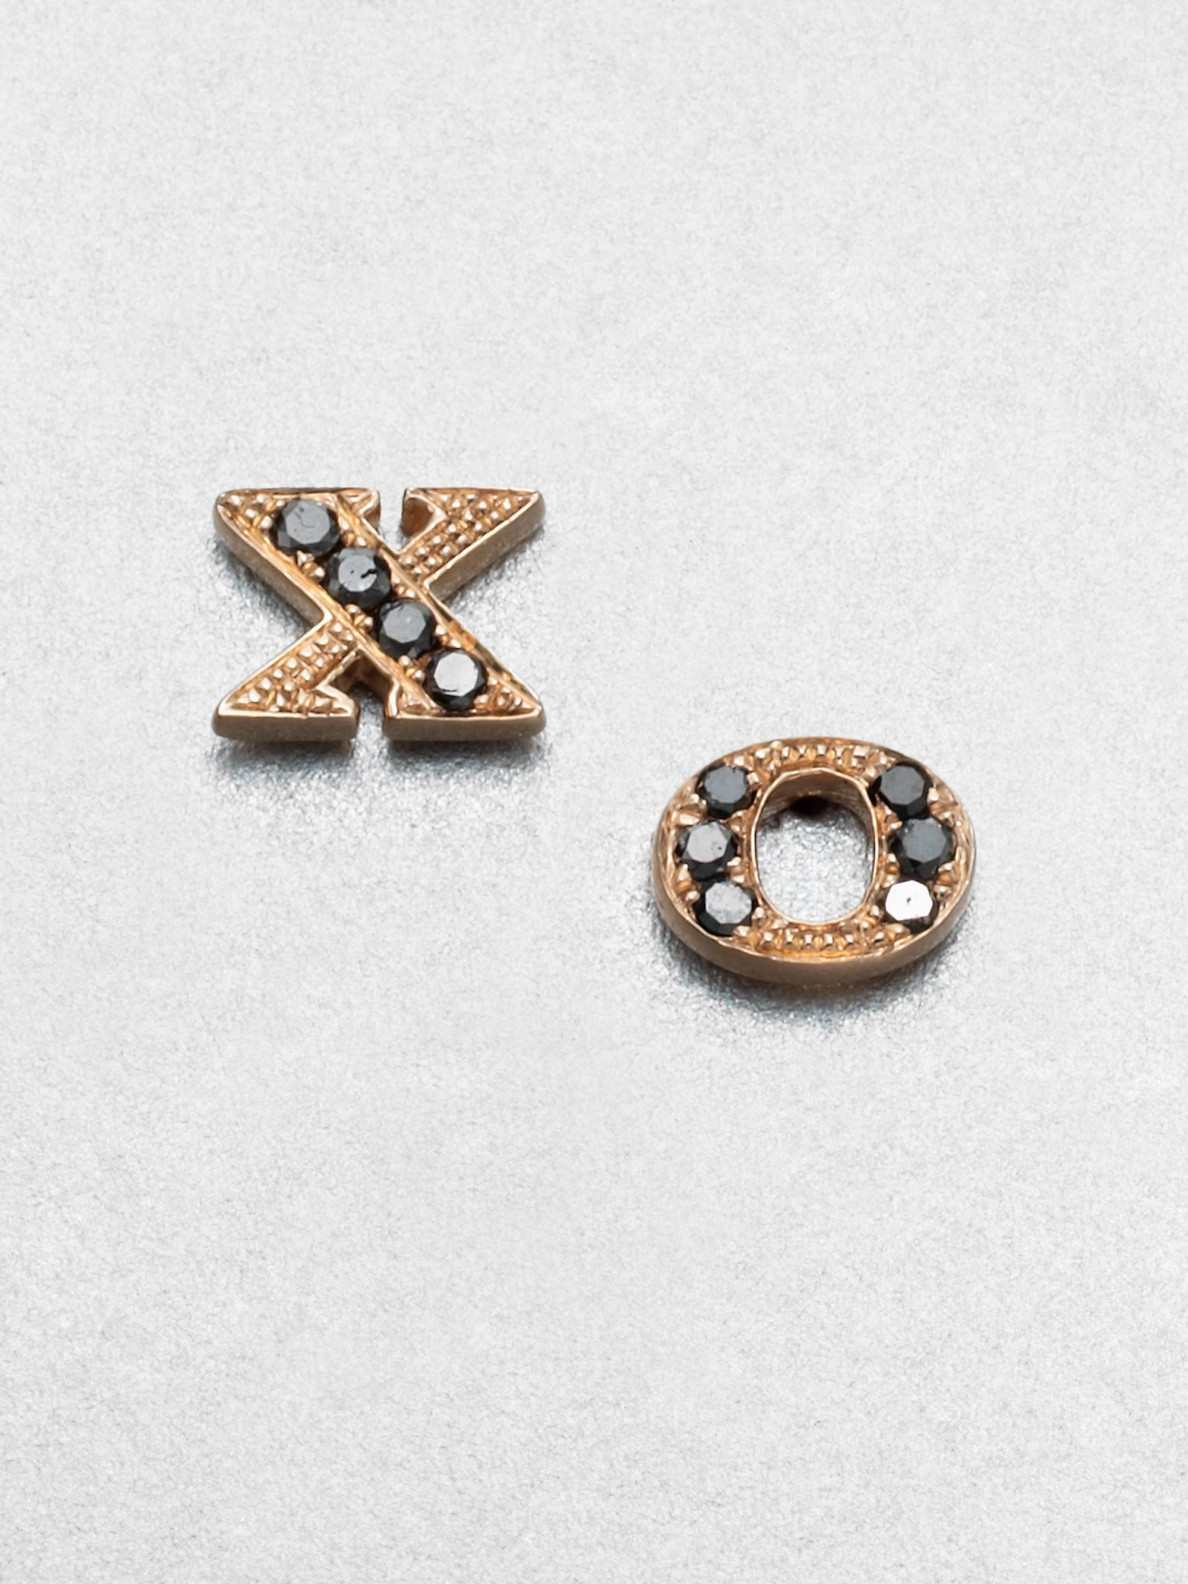 89ede7634 Sydney Evan Black Diamond 14k Rose Gold Xo Stud Earrings in Metallic ...